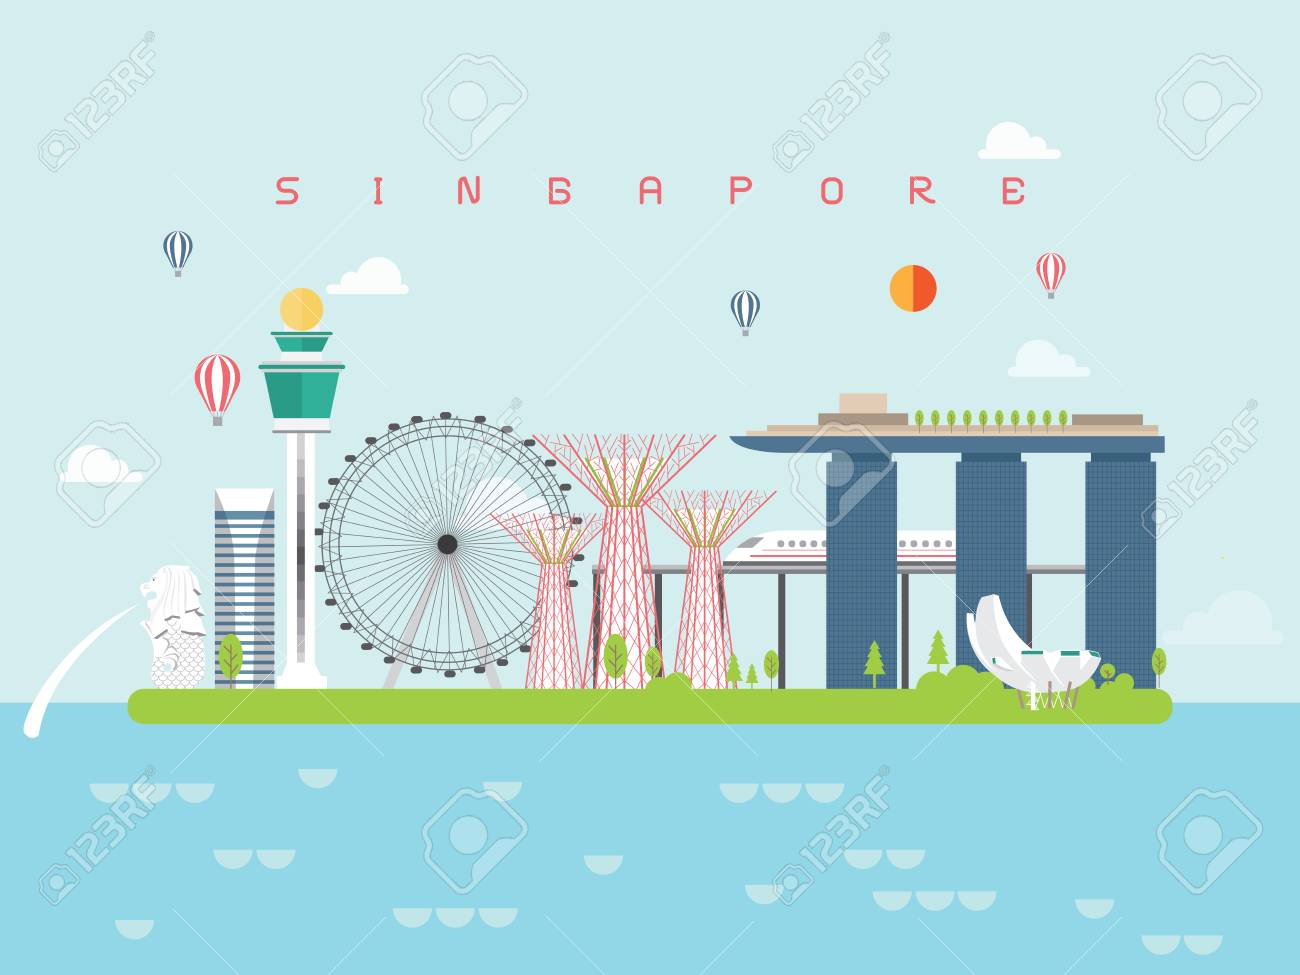 Singapore Famous Landmarks Infographic Templates for Traveling Minimal Style and Icon, Symbol Set Vector Illustration Can be use for Poster Travel book, Postcard, Billboard. - 102688834